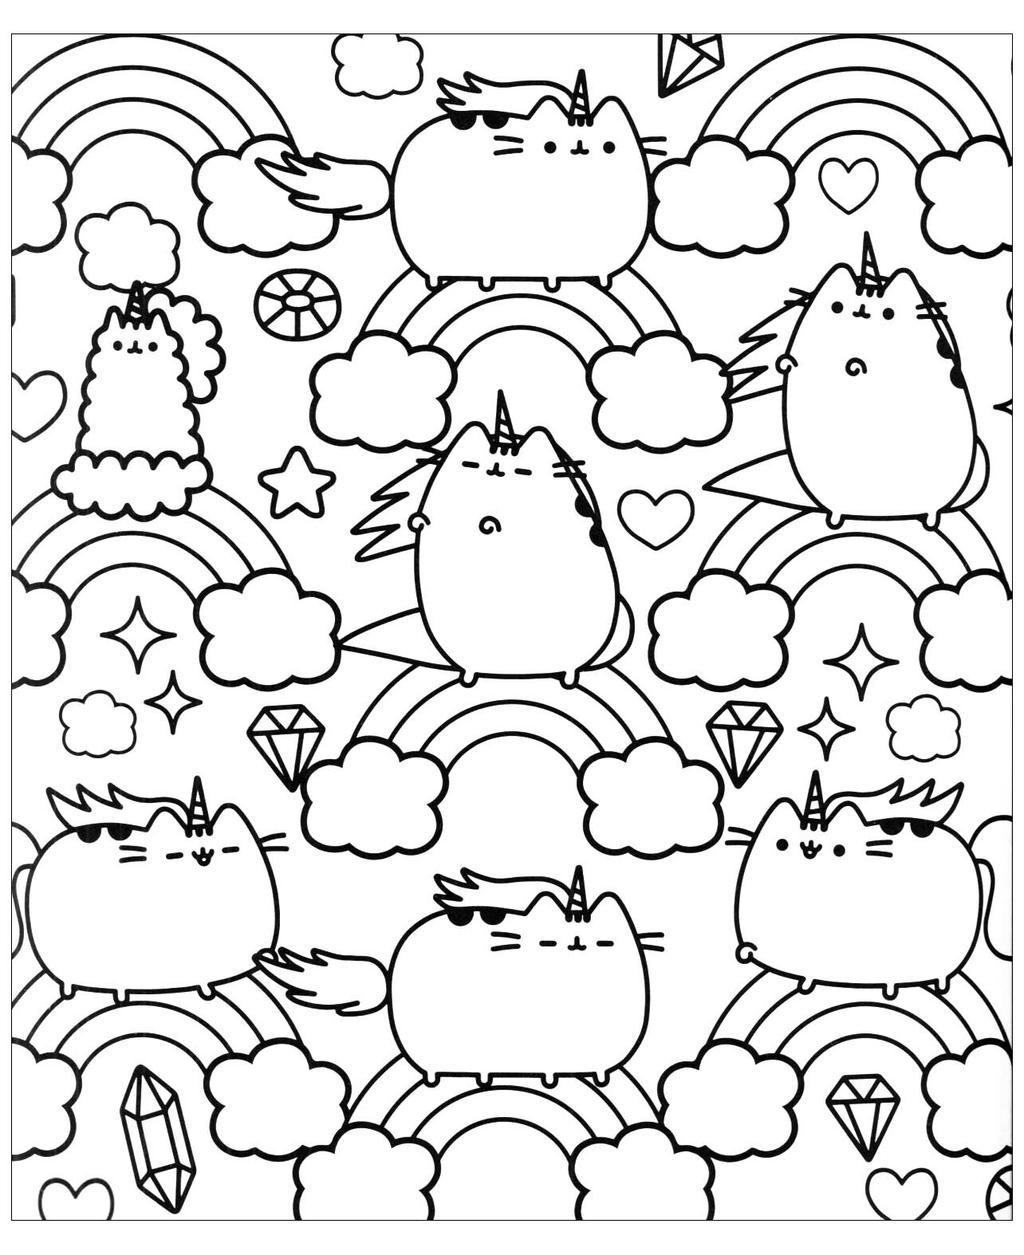 Pusheen Cat Coloring Pages Pusheen Cat Coloring Pages 131 Images Free Printable Coloring Pages